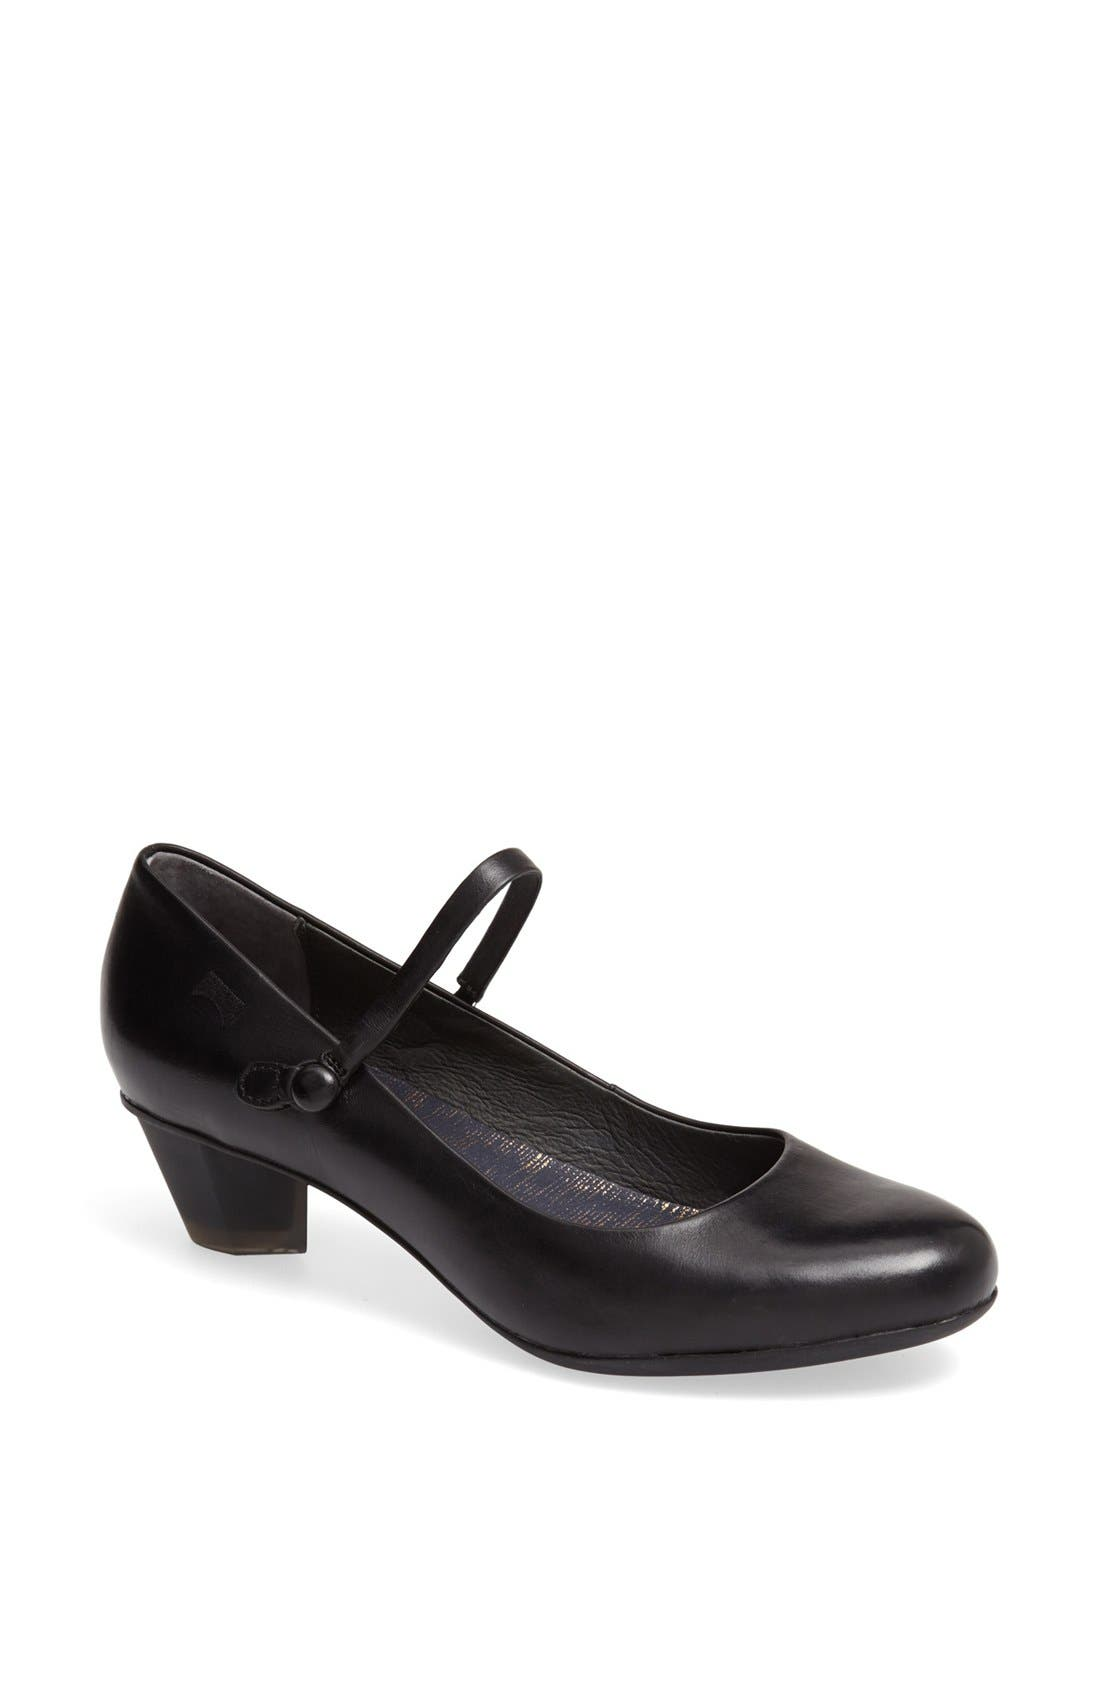 Alternate Image 1 Selected - Camper 'Kim' Leather Mary Jane Pump